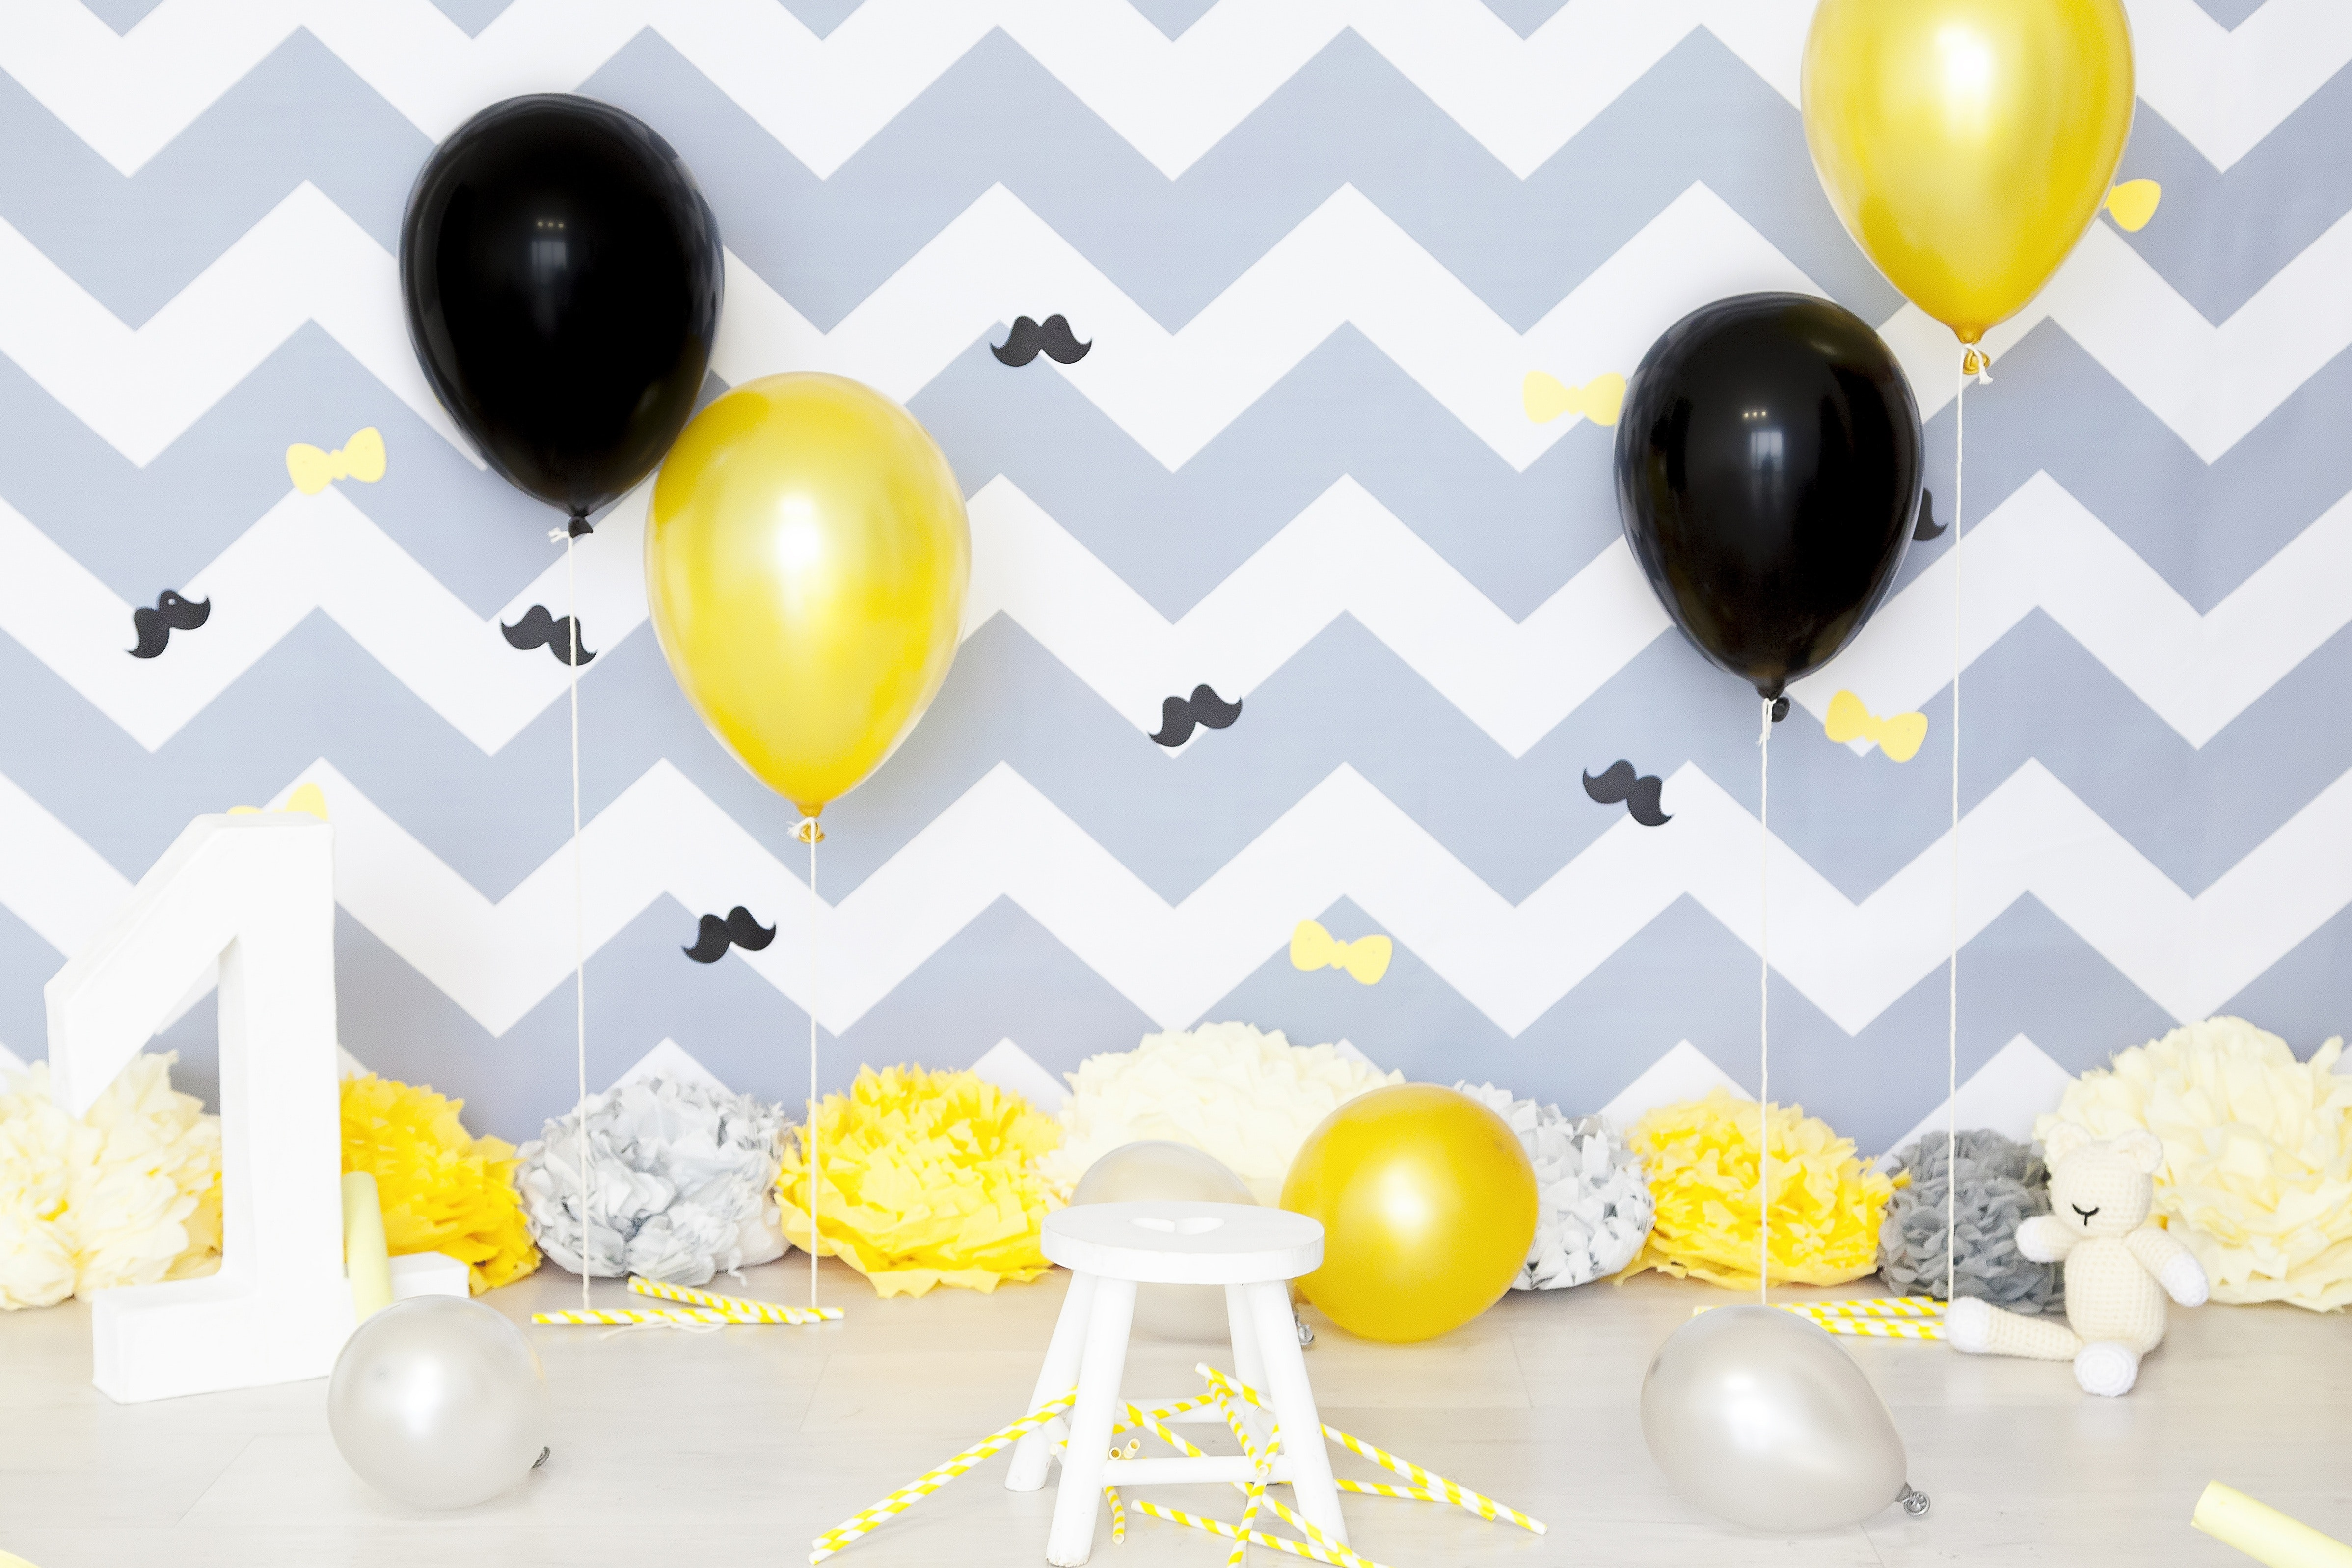 Related Searches Celebration Party Balloon Birthday Confetti